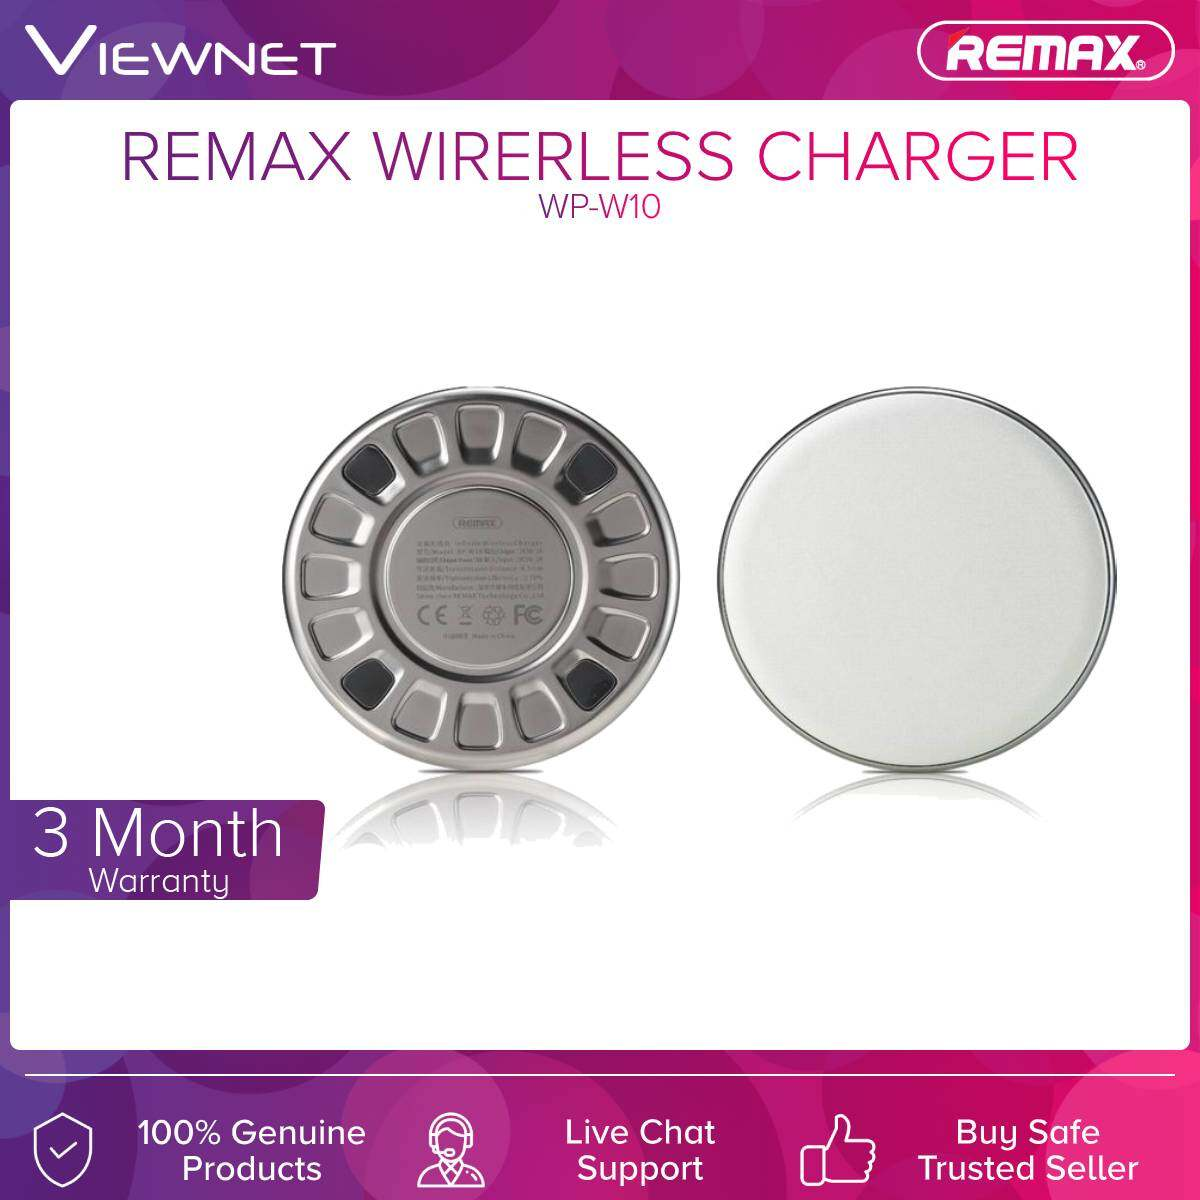 Remax (RP-W10) Infinite Wireless Charger 5W